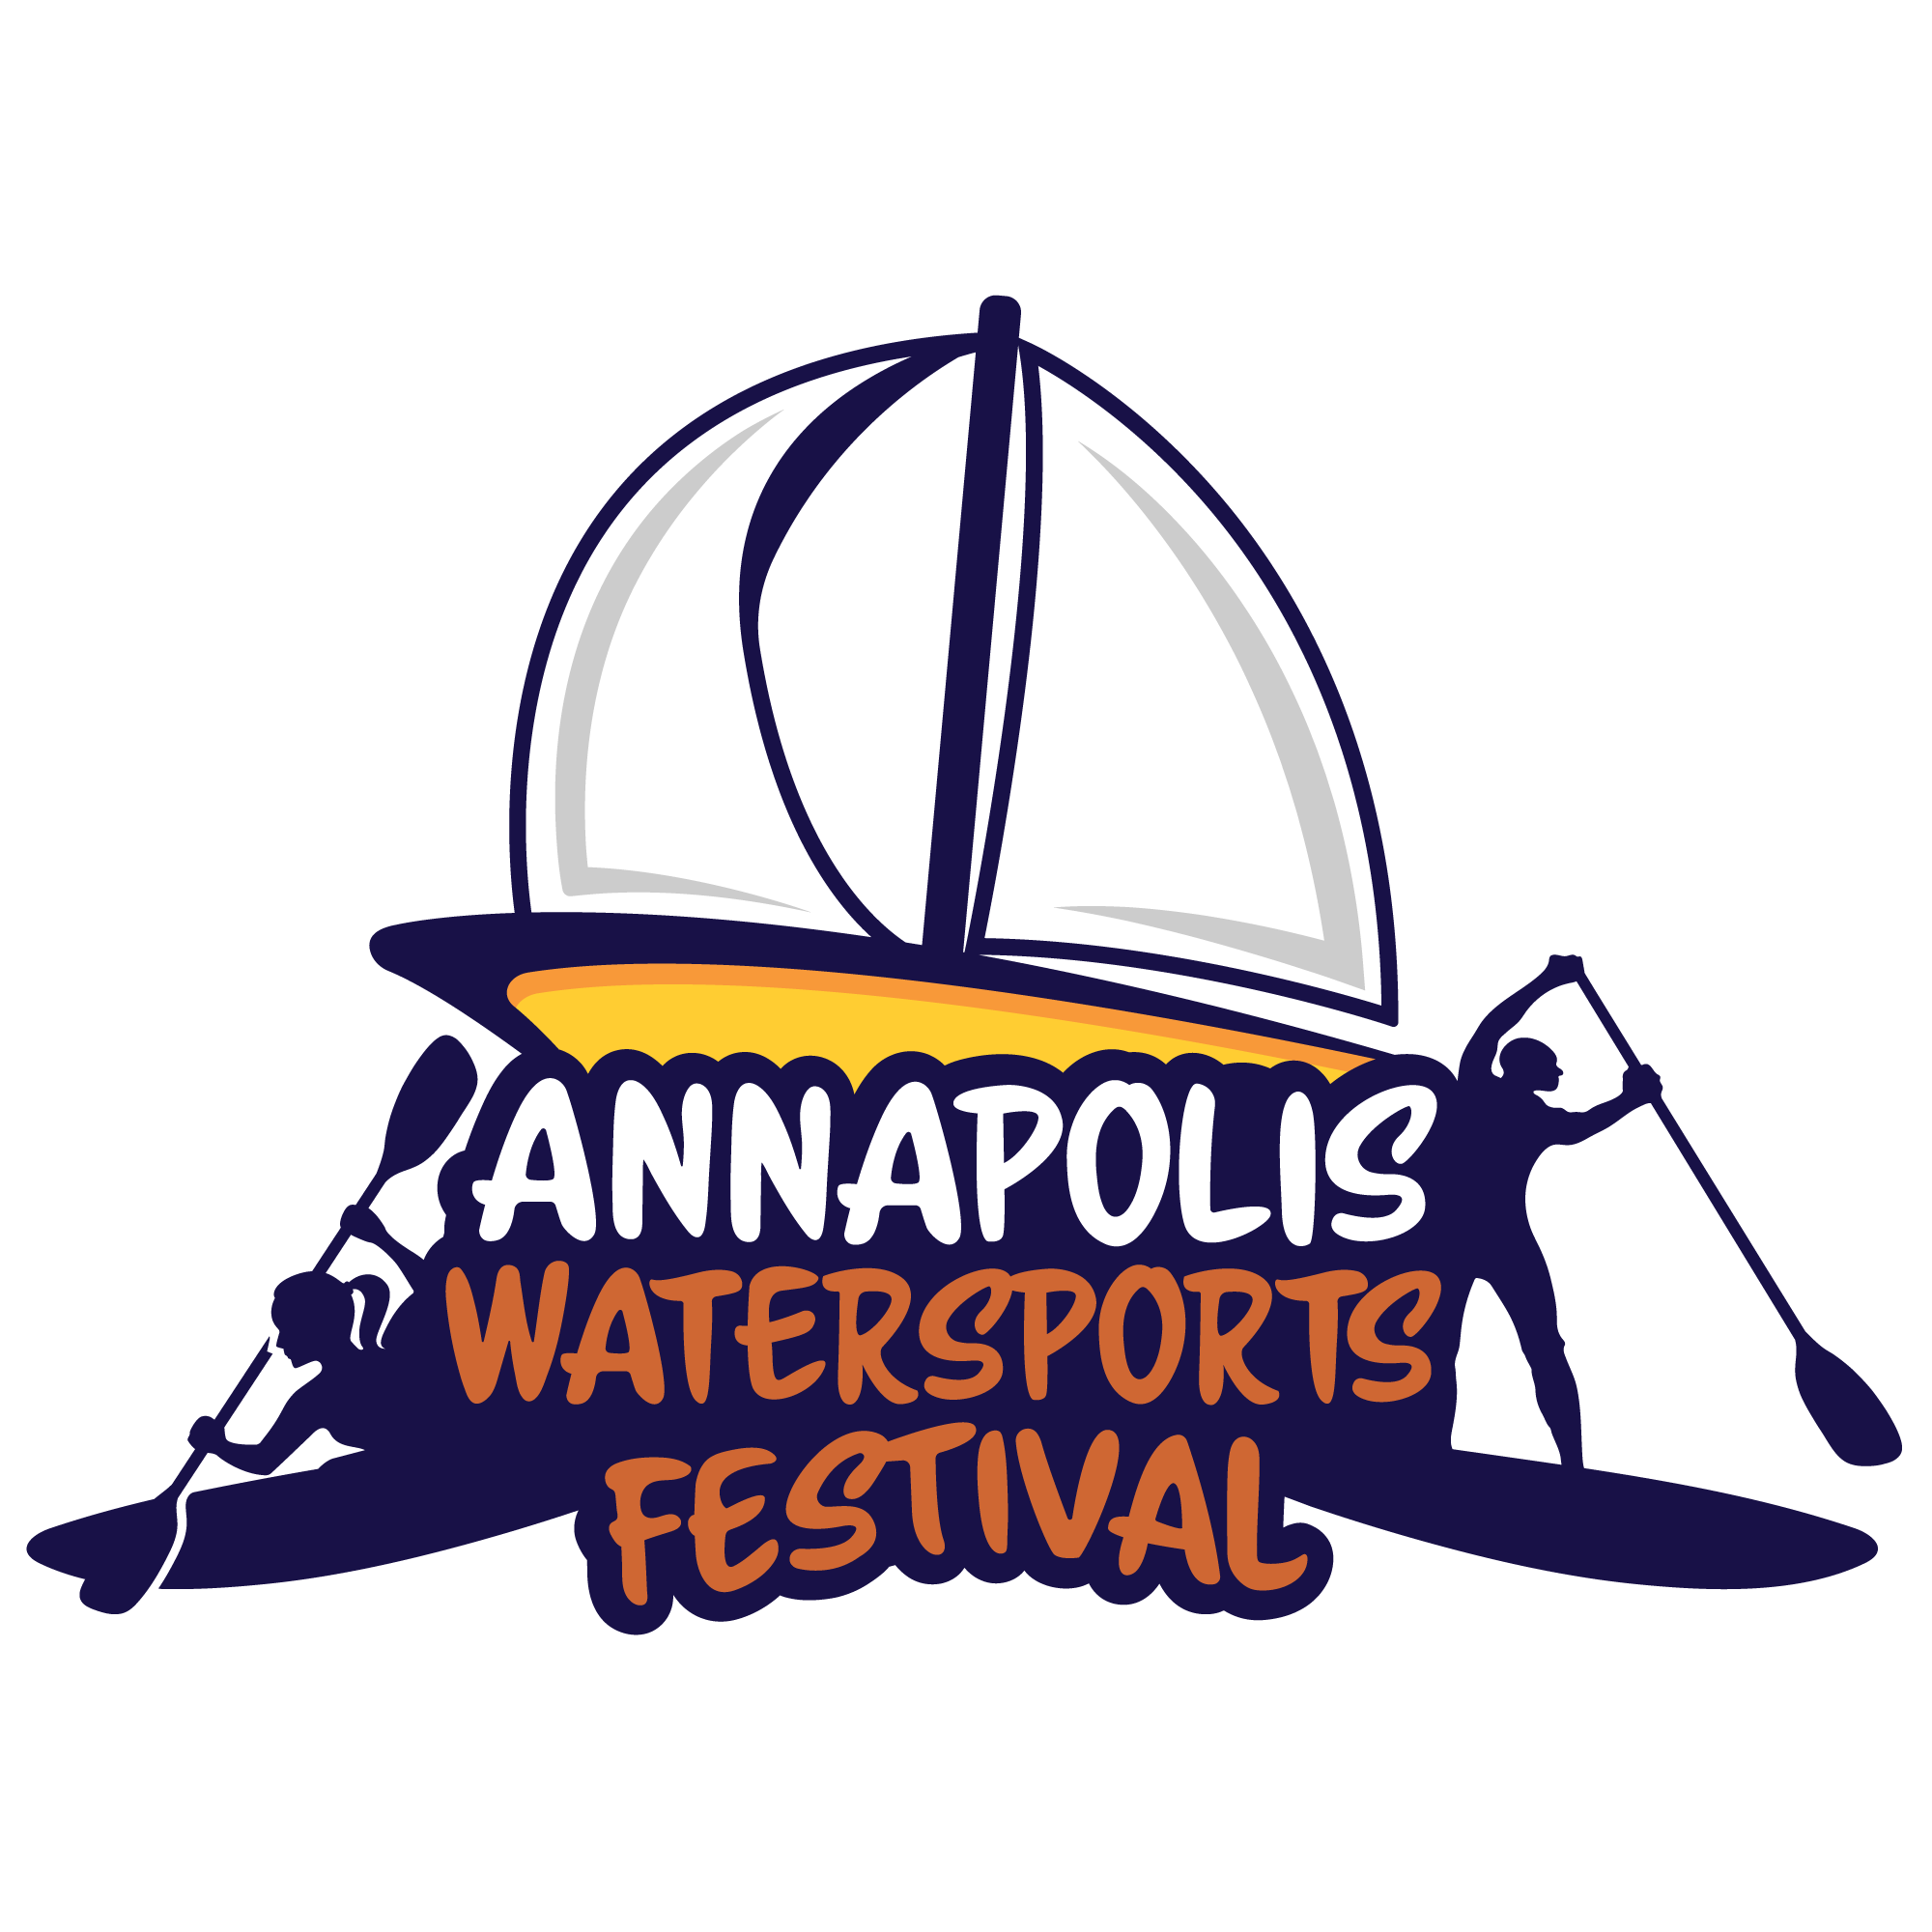 Annapolis-Watersports-Festival-1 (1)